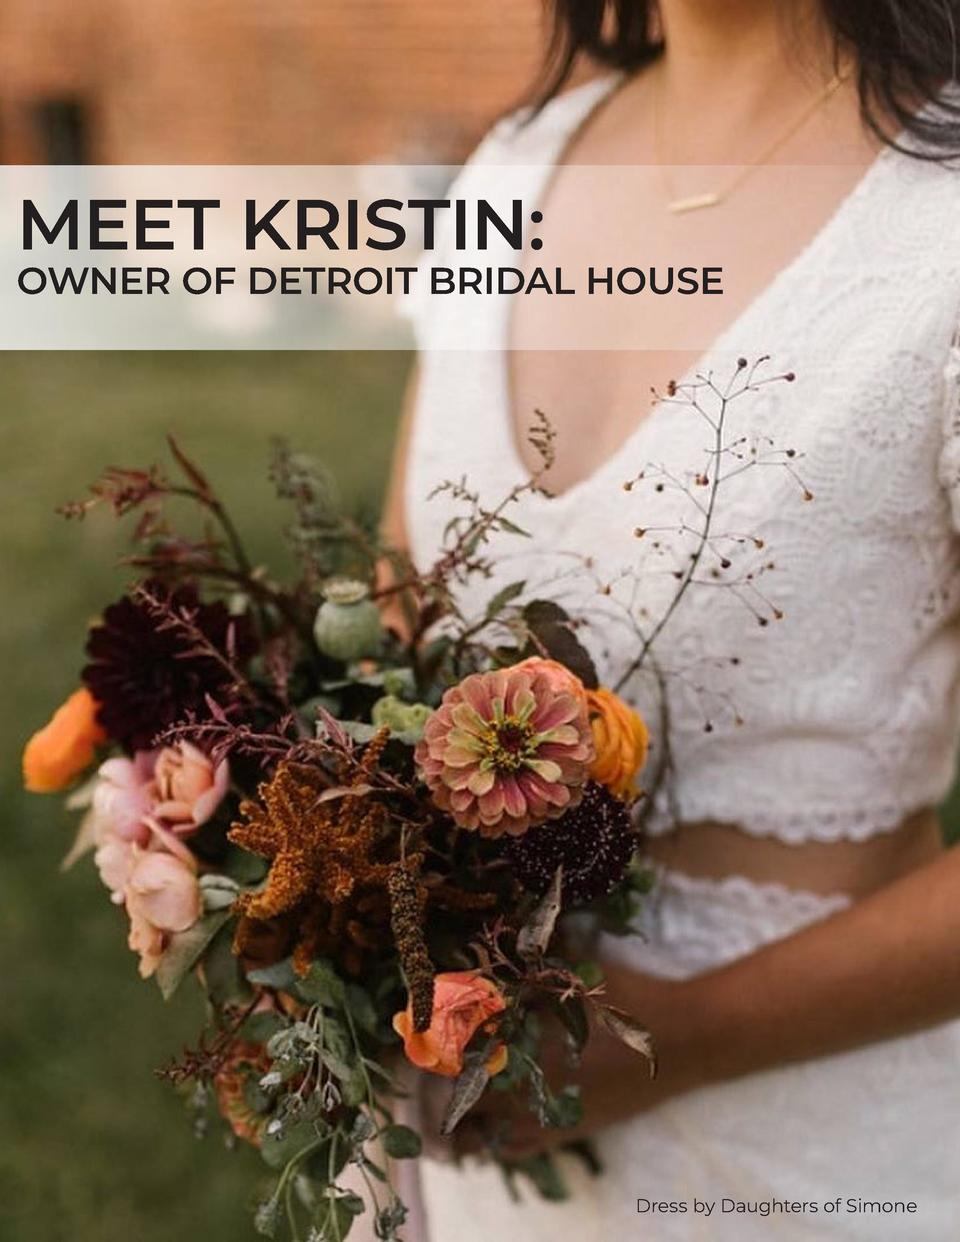 MEET KRISTIN   OWNER OF DETROIT BRIDAL HOUSE  MEET AMANDA   DESIGNER OF LOVE LIVES HERE  Dress by Daughters of Simone